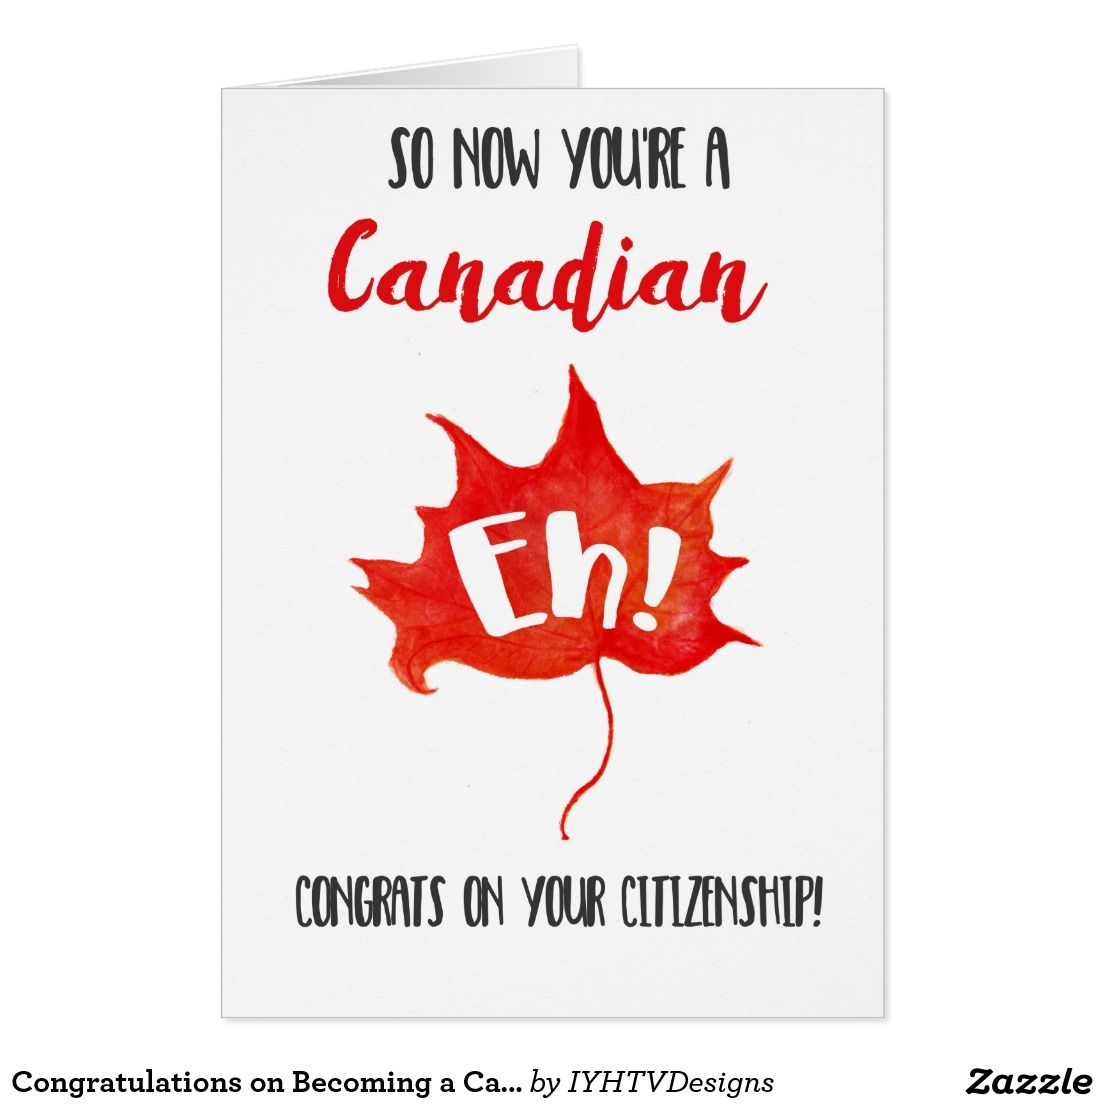 Congratulations on becoming a canadian citizen greeting card cards congratulations on becoming a canadian citizen greeting card m4hsunfo